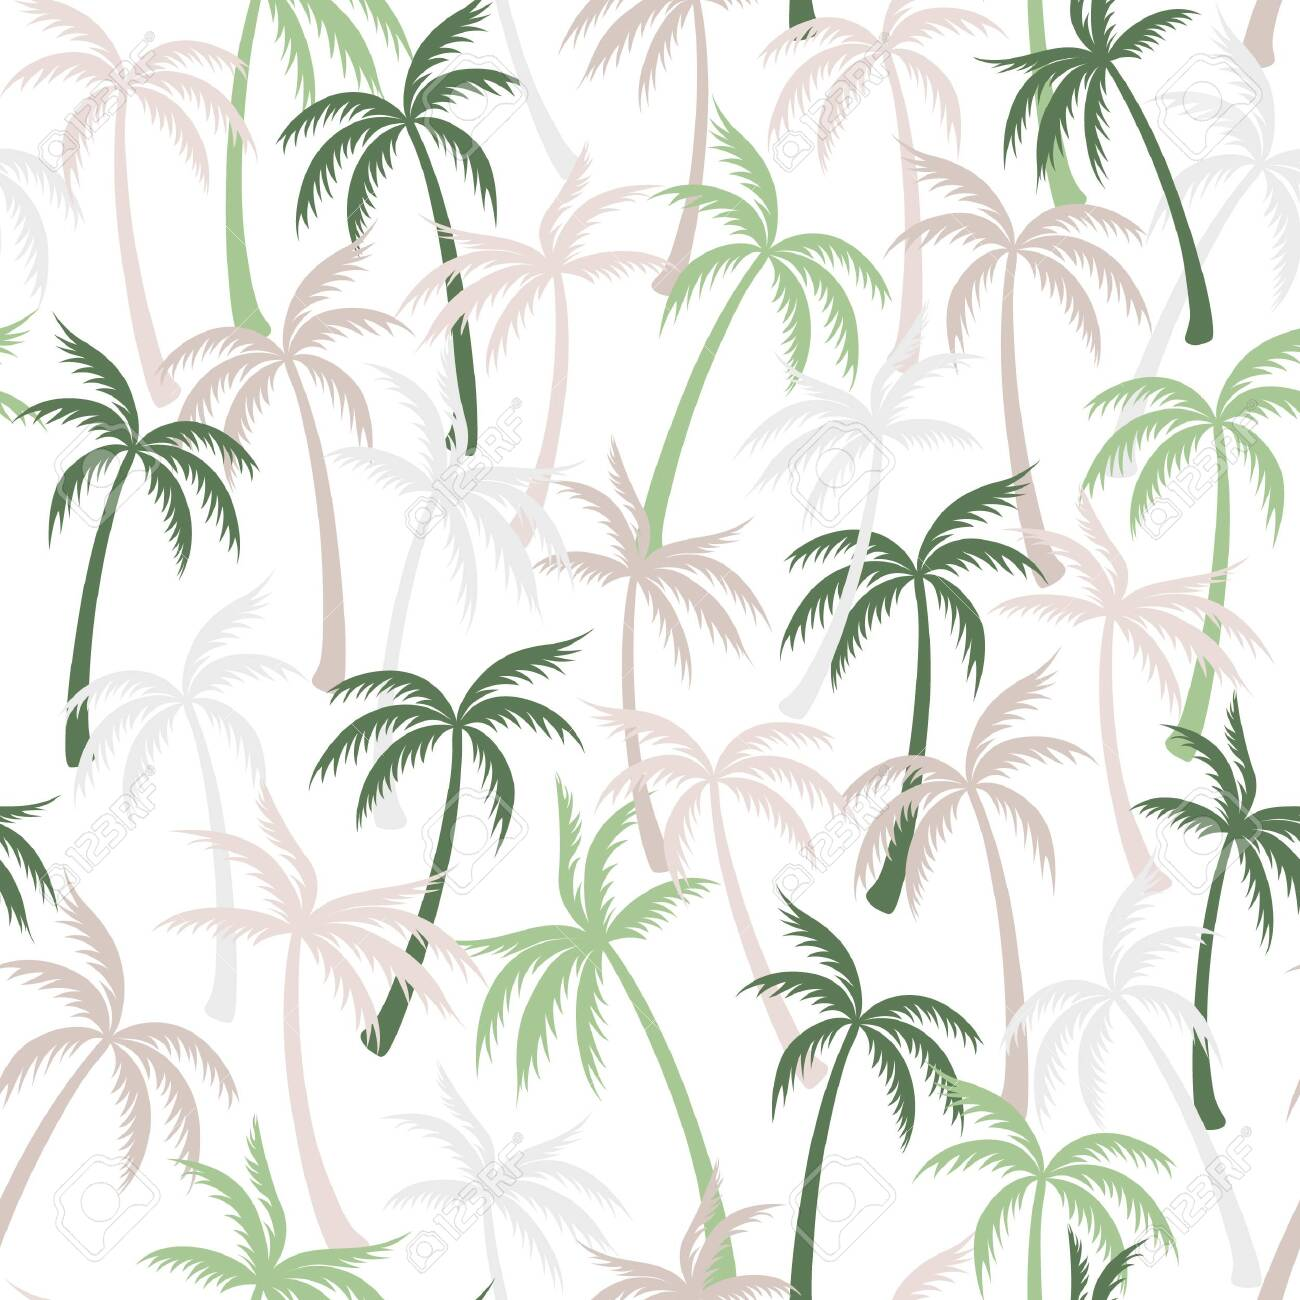 Coconut Palm Tree Pattern Textile Seamless Tropical Forest Background Royalty Free Cliparts Vectors And Stock Illustration Image 122830310